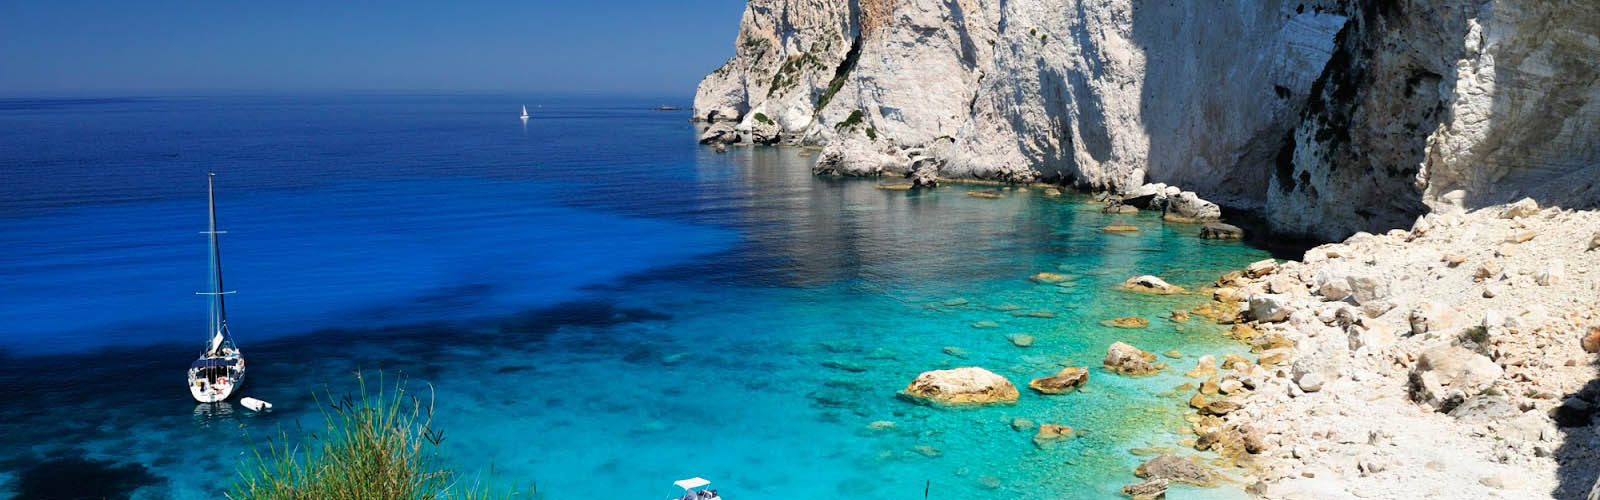 CRUISE TO PAXOS-ANTIPAXOS-BLUE CAVES